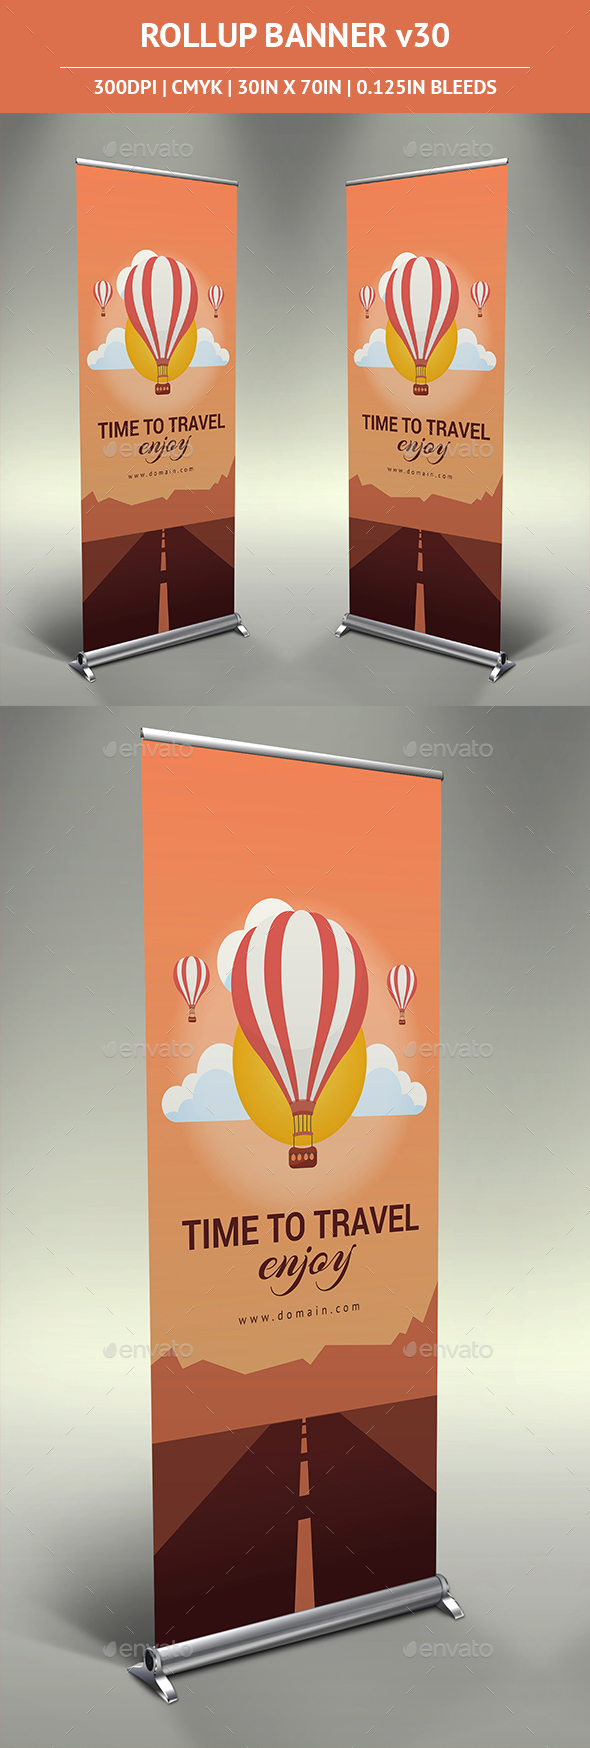 Rollup Banner vol30 - Signage Print Templates